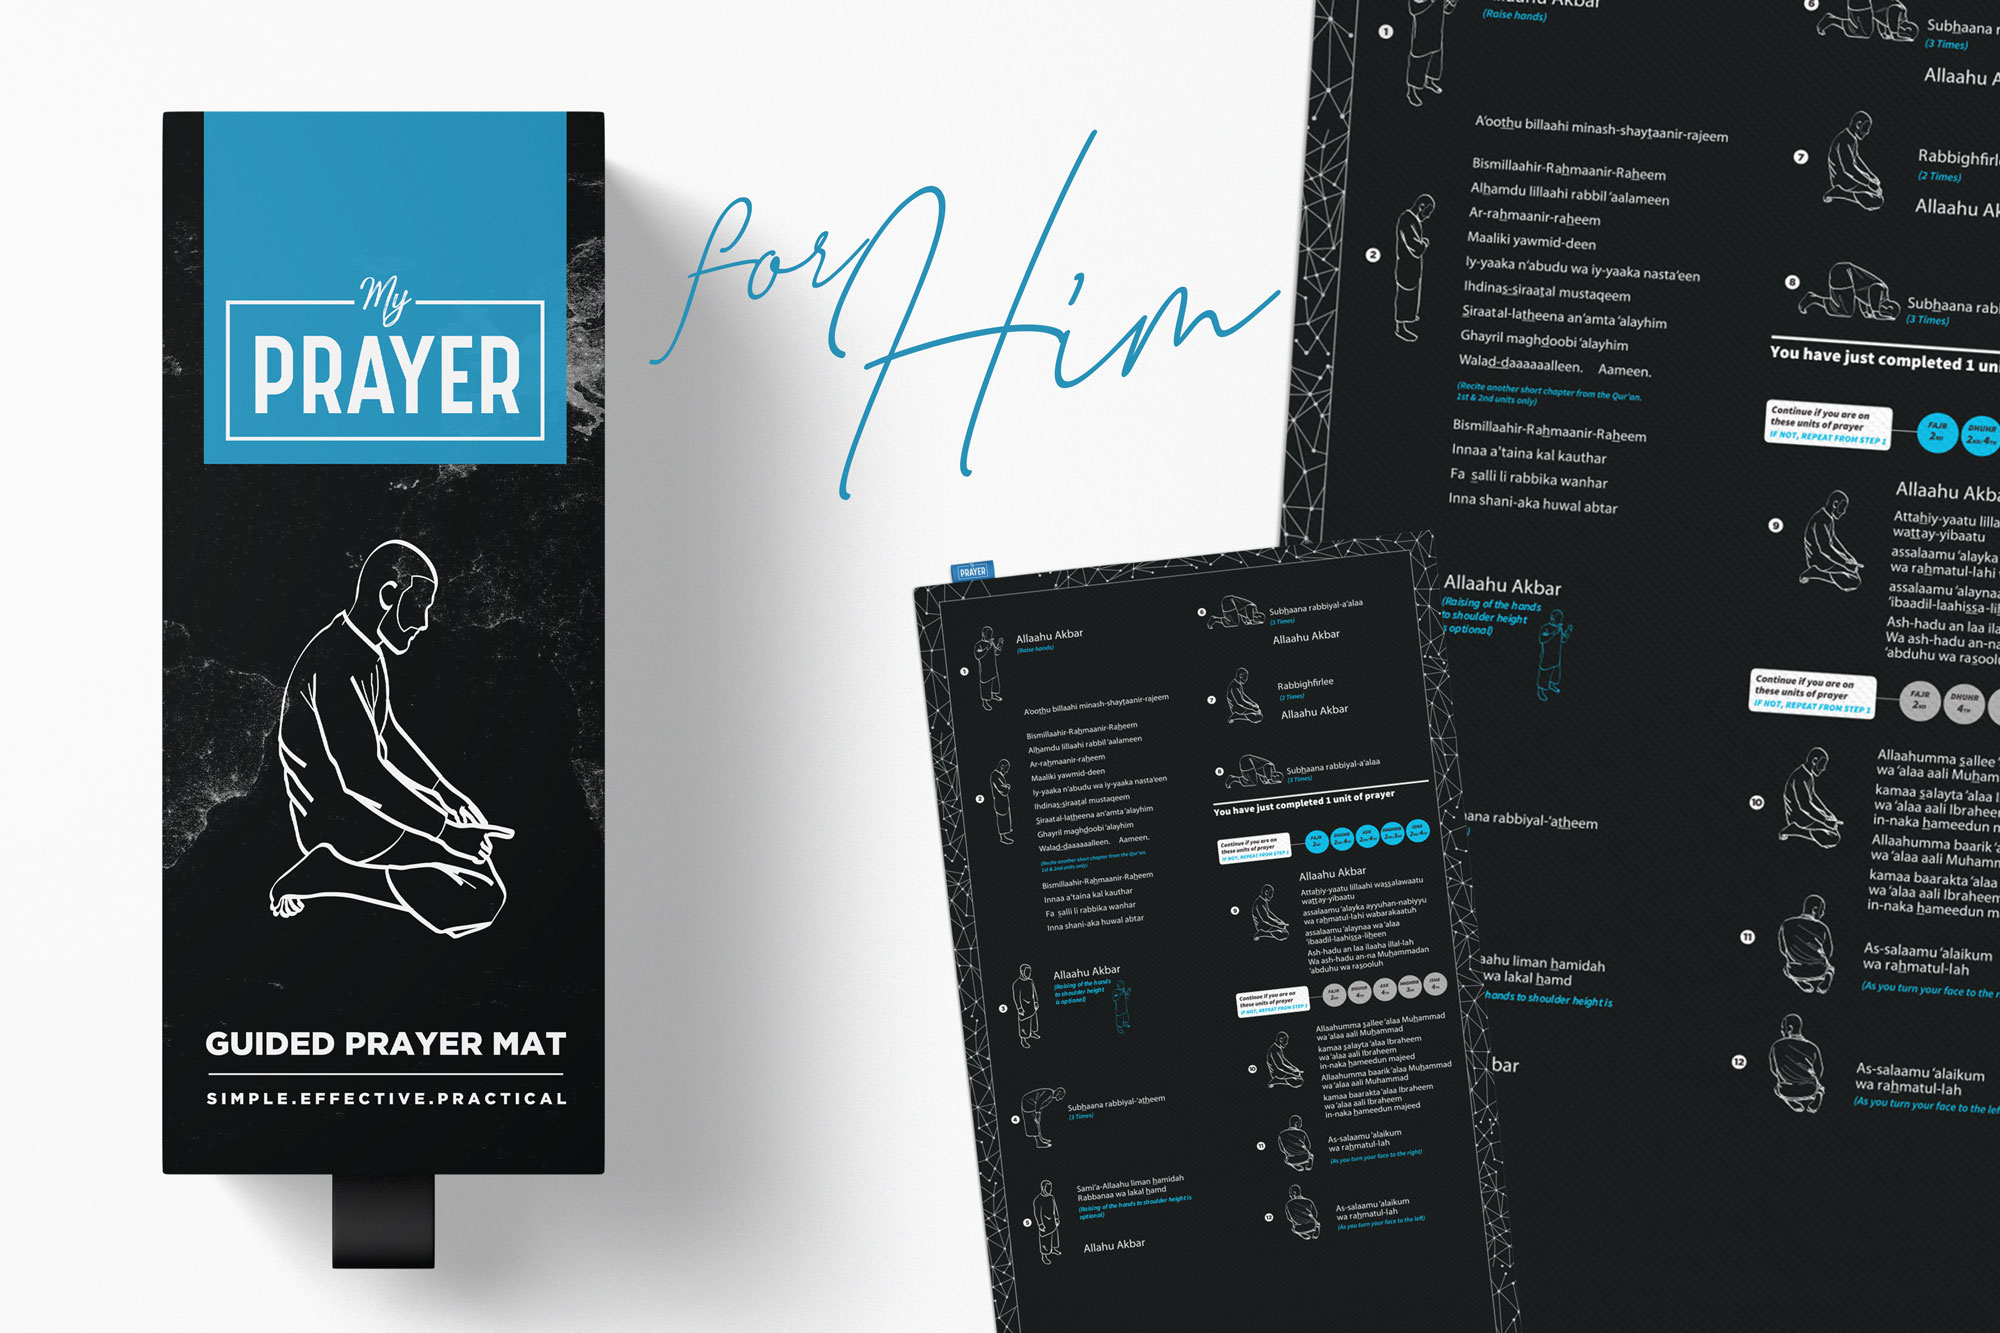 Muslim men learn how to pray with ease with the Guided Prayer Mat from Tenfold